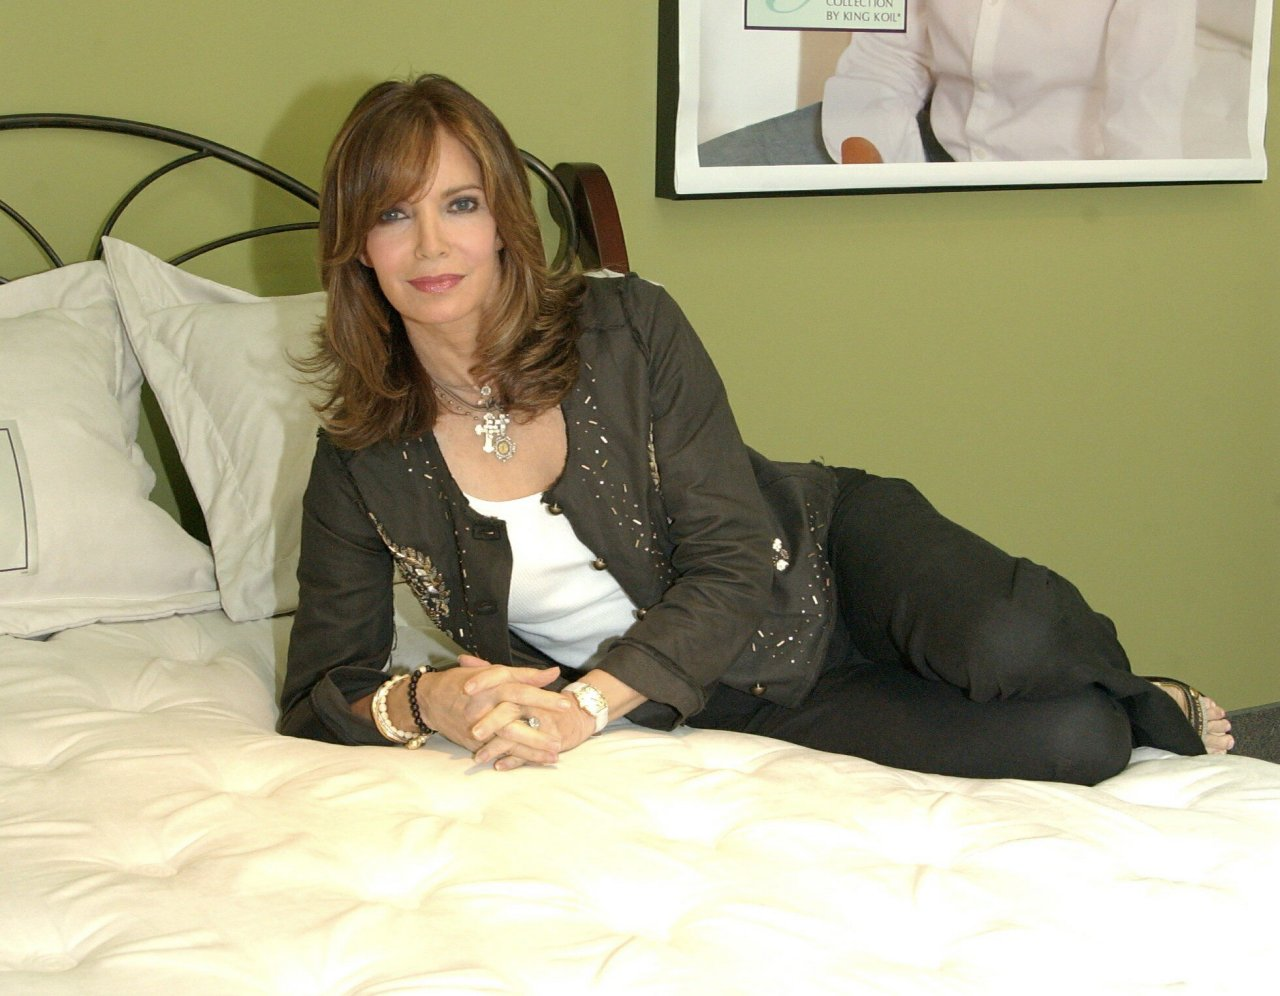 1280x996 - Jaclyn Smith Wallpapers 8